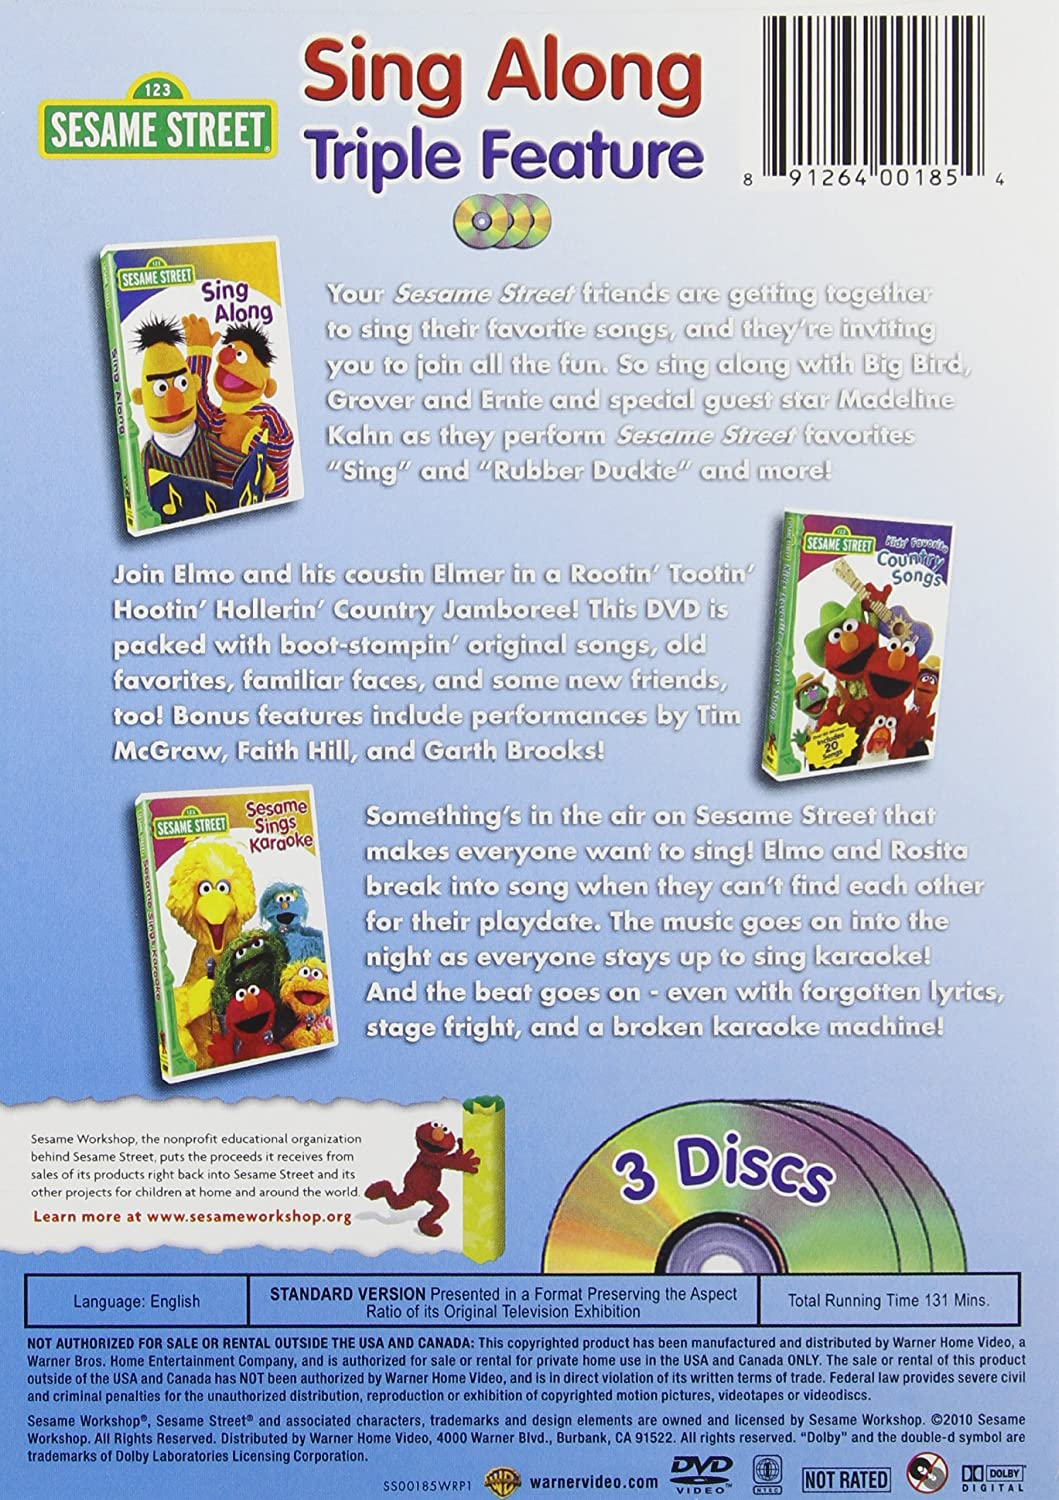 Sesame Street 14 Pack With Platinum All Time Favorites CD Movie HD free download 720p